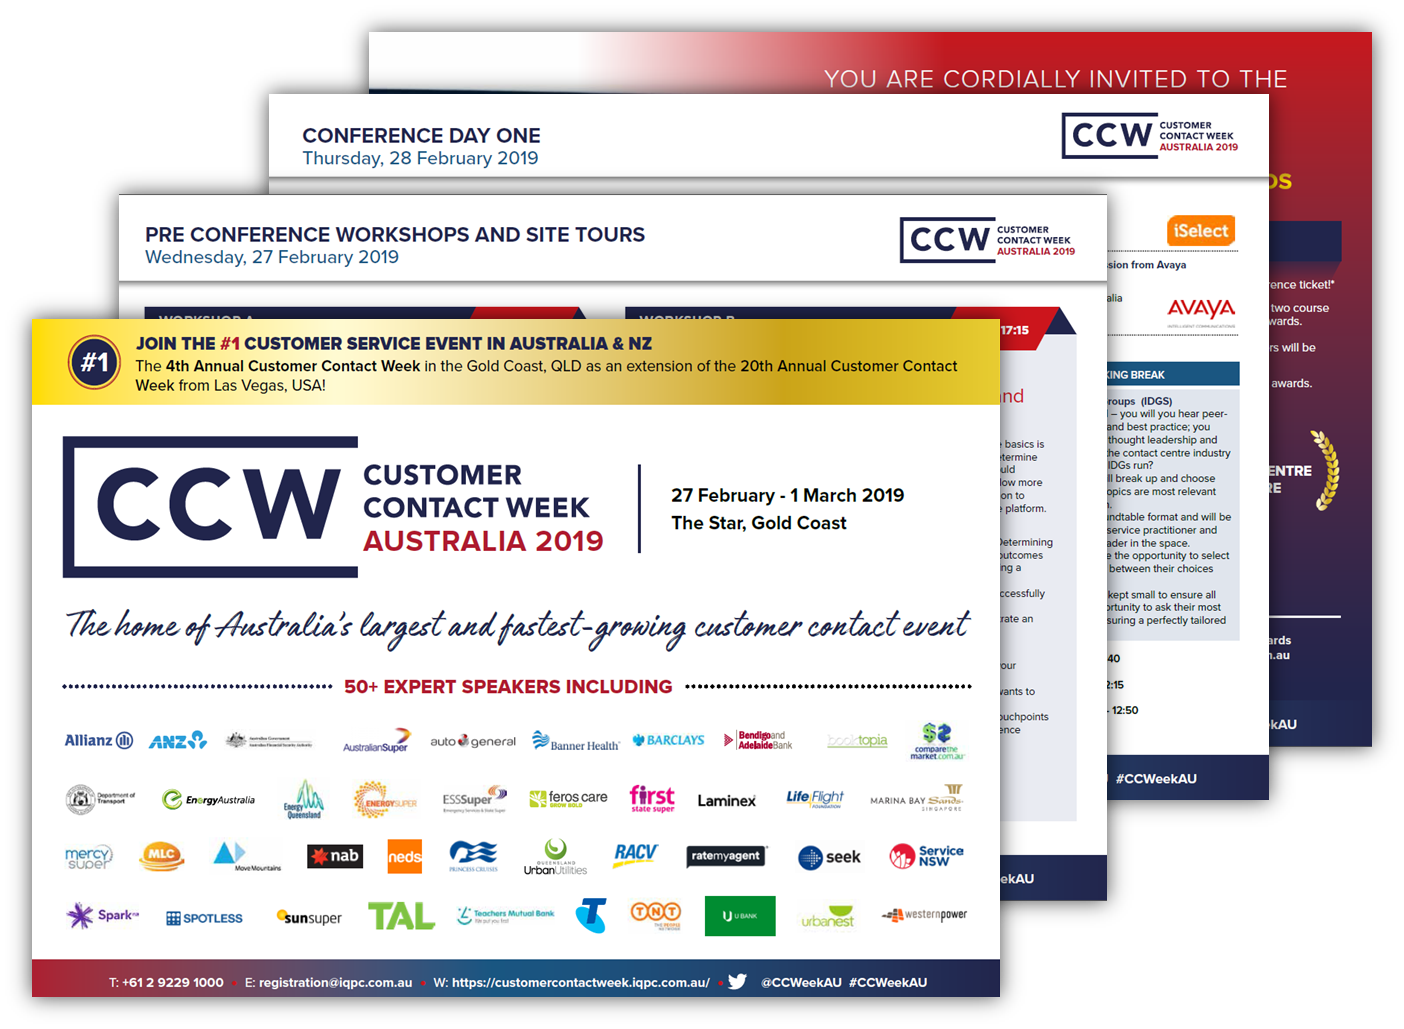 Customer Contact Week 2019: Agenda